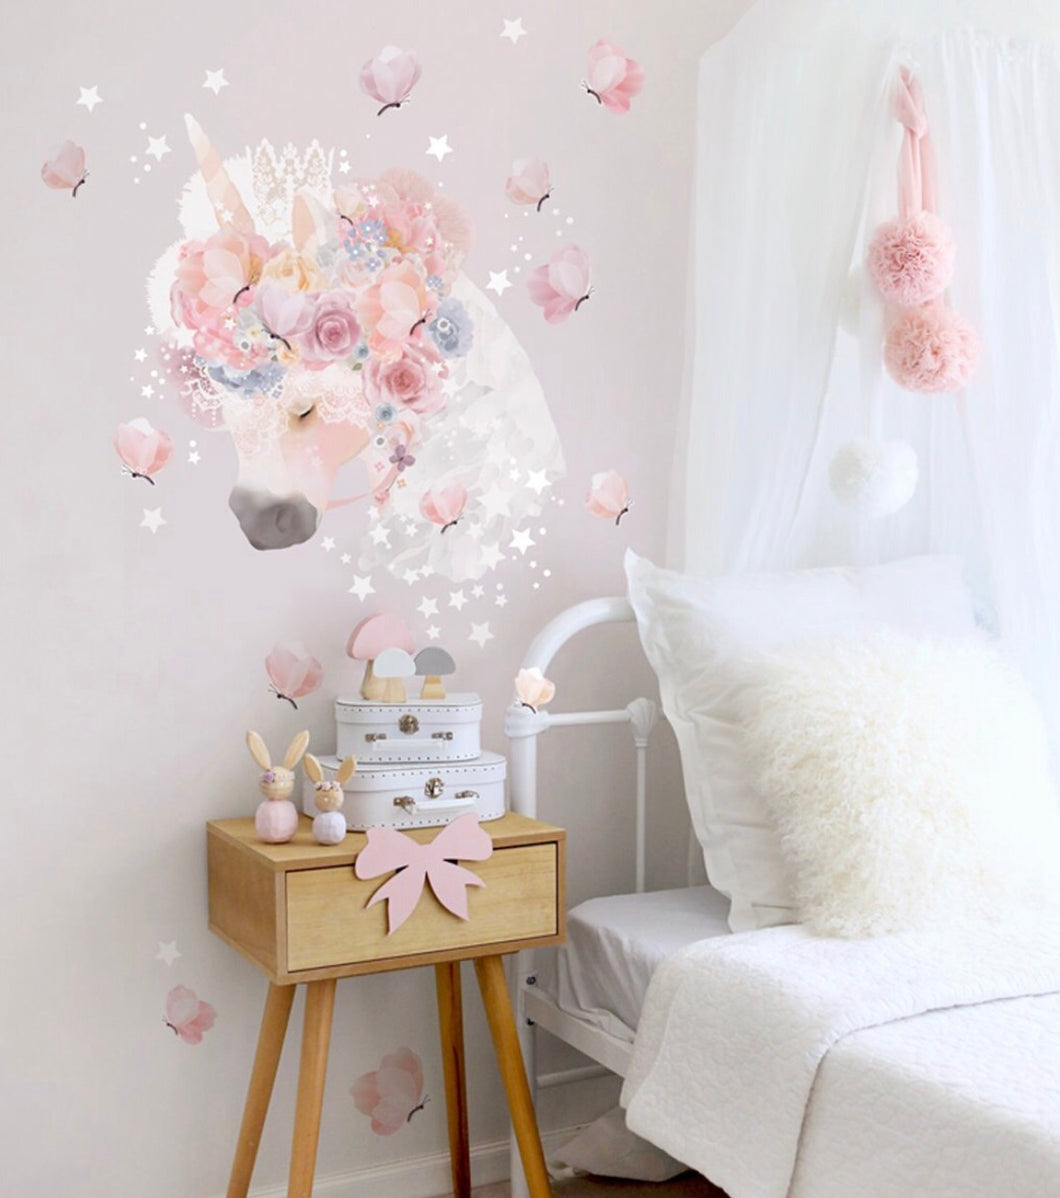 Schmooks Unicorn & Butterflies Wall Decal